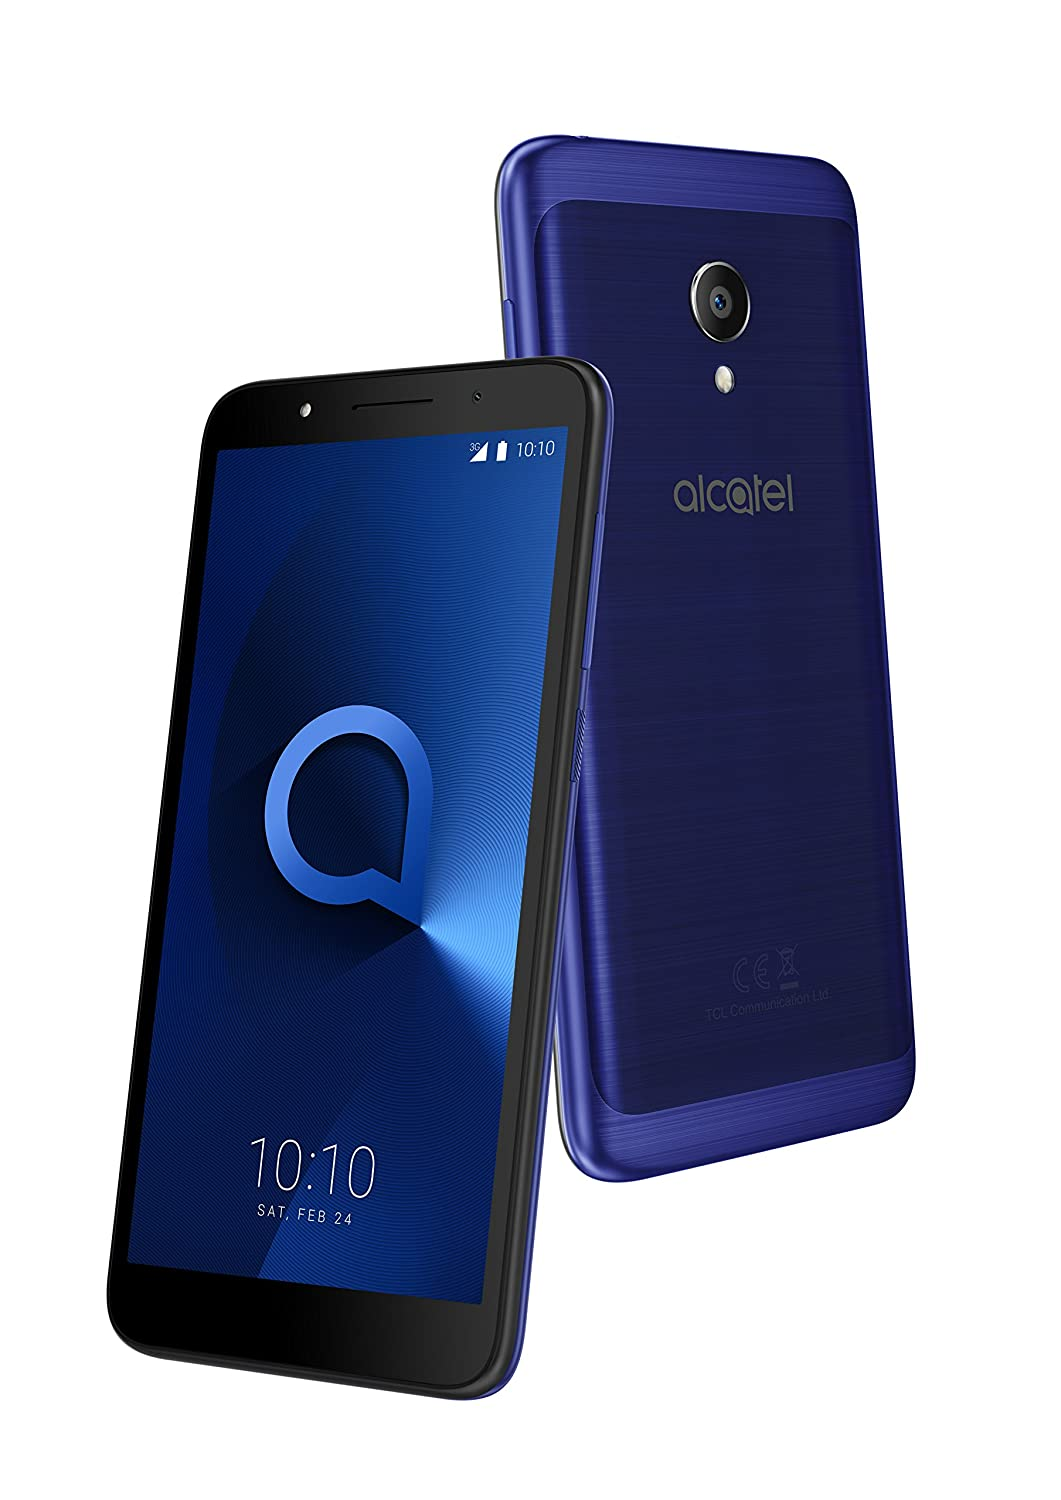 Alcatel 1C 2018 Sim Free Unlocked UK Smartphone: Amazon co